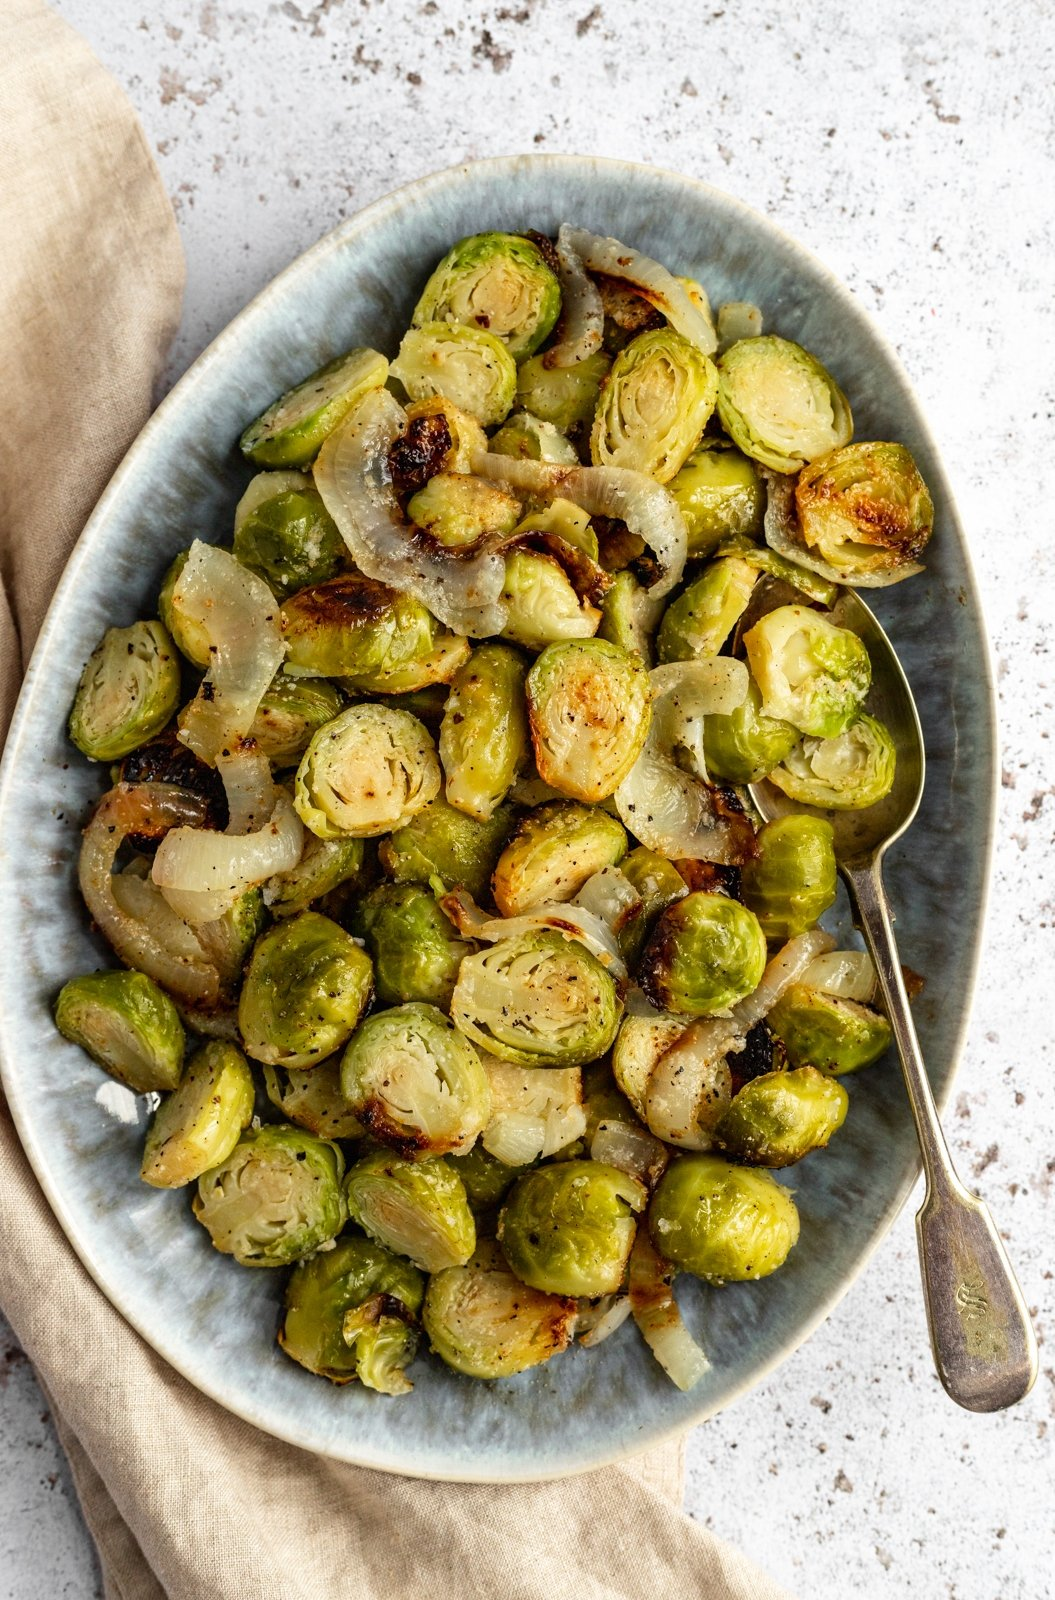 foil pack grilled brussels sprouts in a dish with a spoon